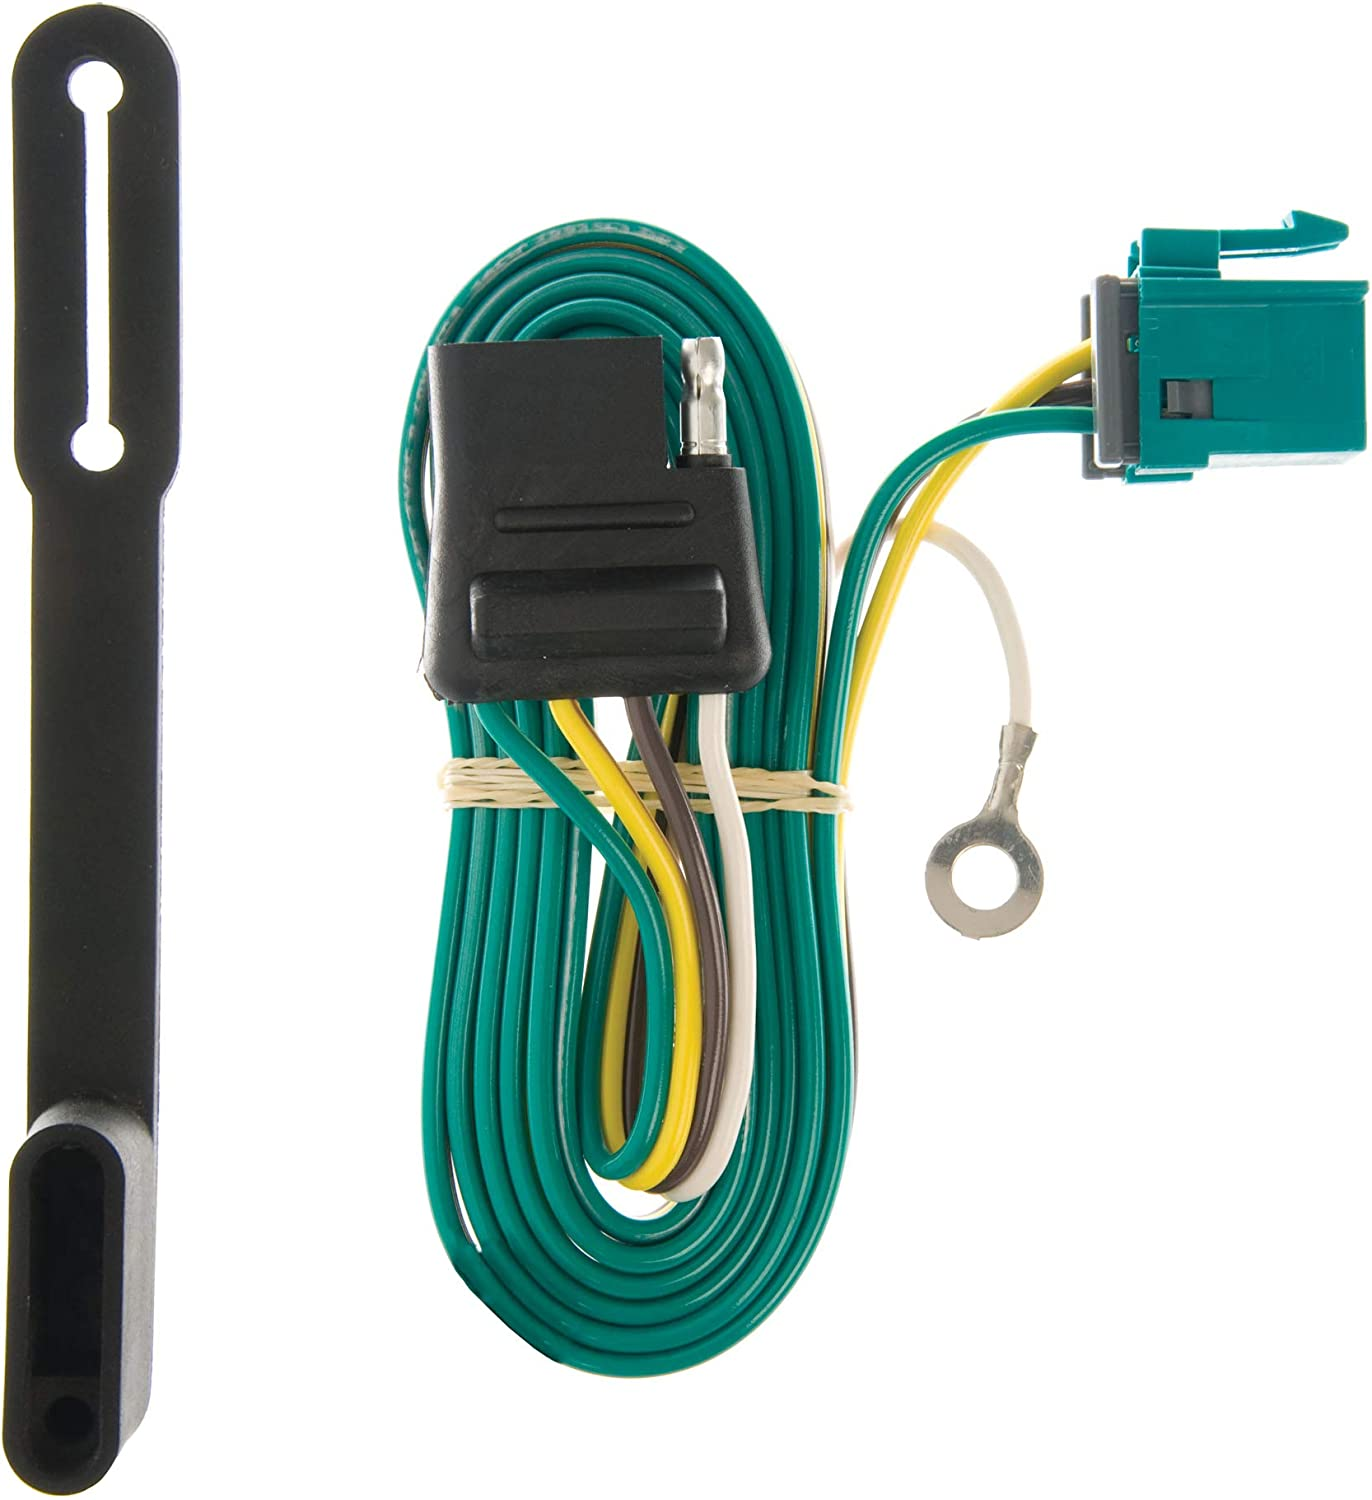 [NRIO_4796]   Amazon.com: CURT 55240 Vehicle-Side Custom 4-Pin Trailer Wiring Harness for  Select Chevrolet Express, GMC Savana: Automotive | Chevrolet Express Trailer Wiring |  | Amazon.com